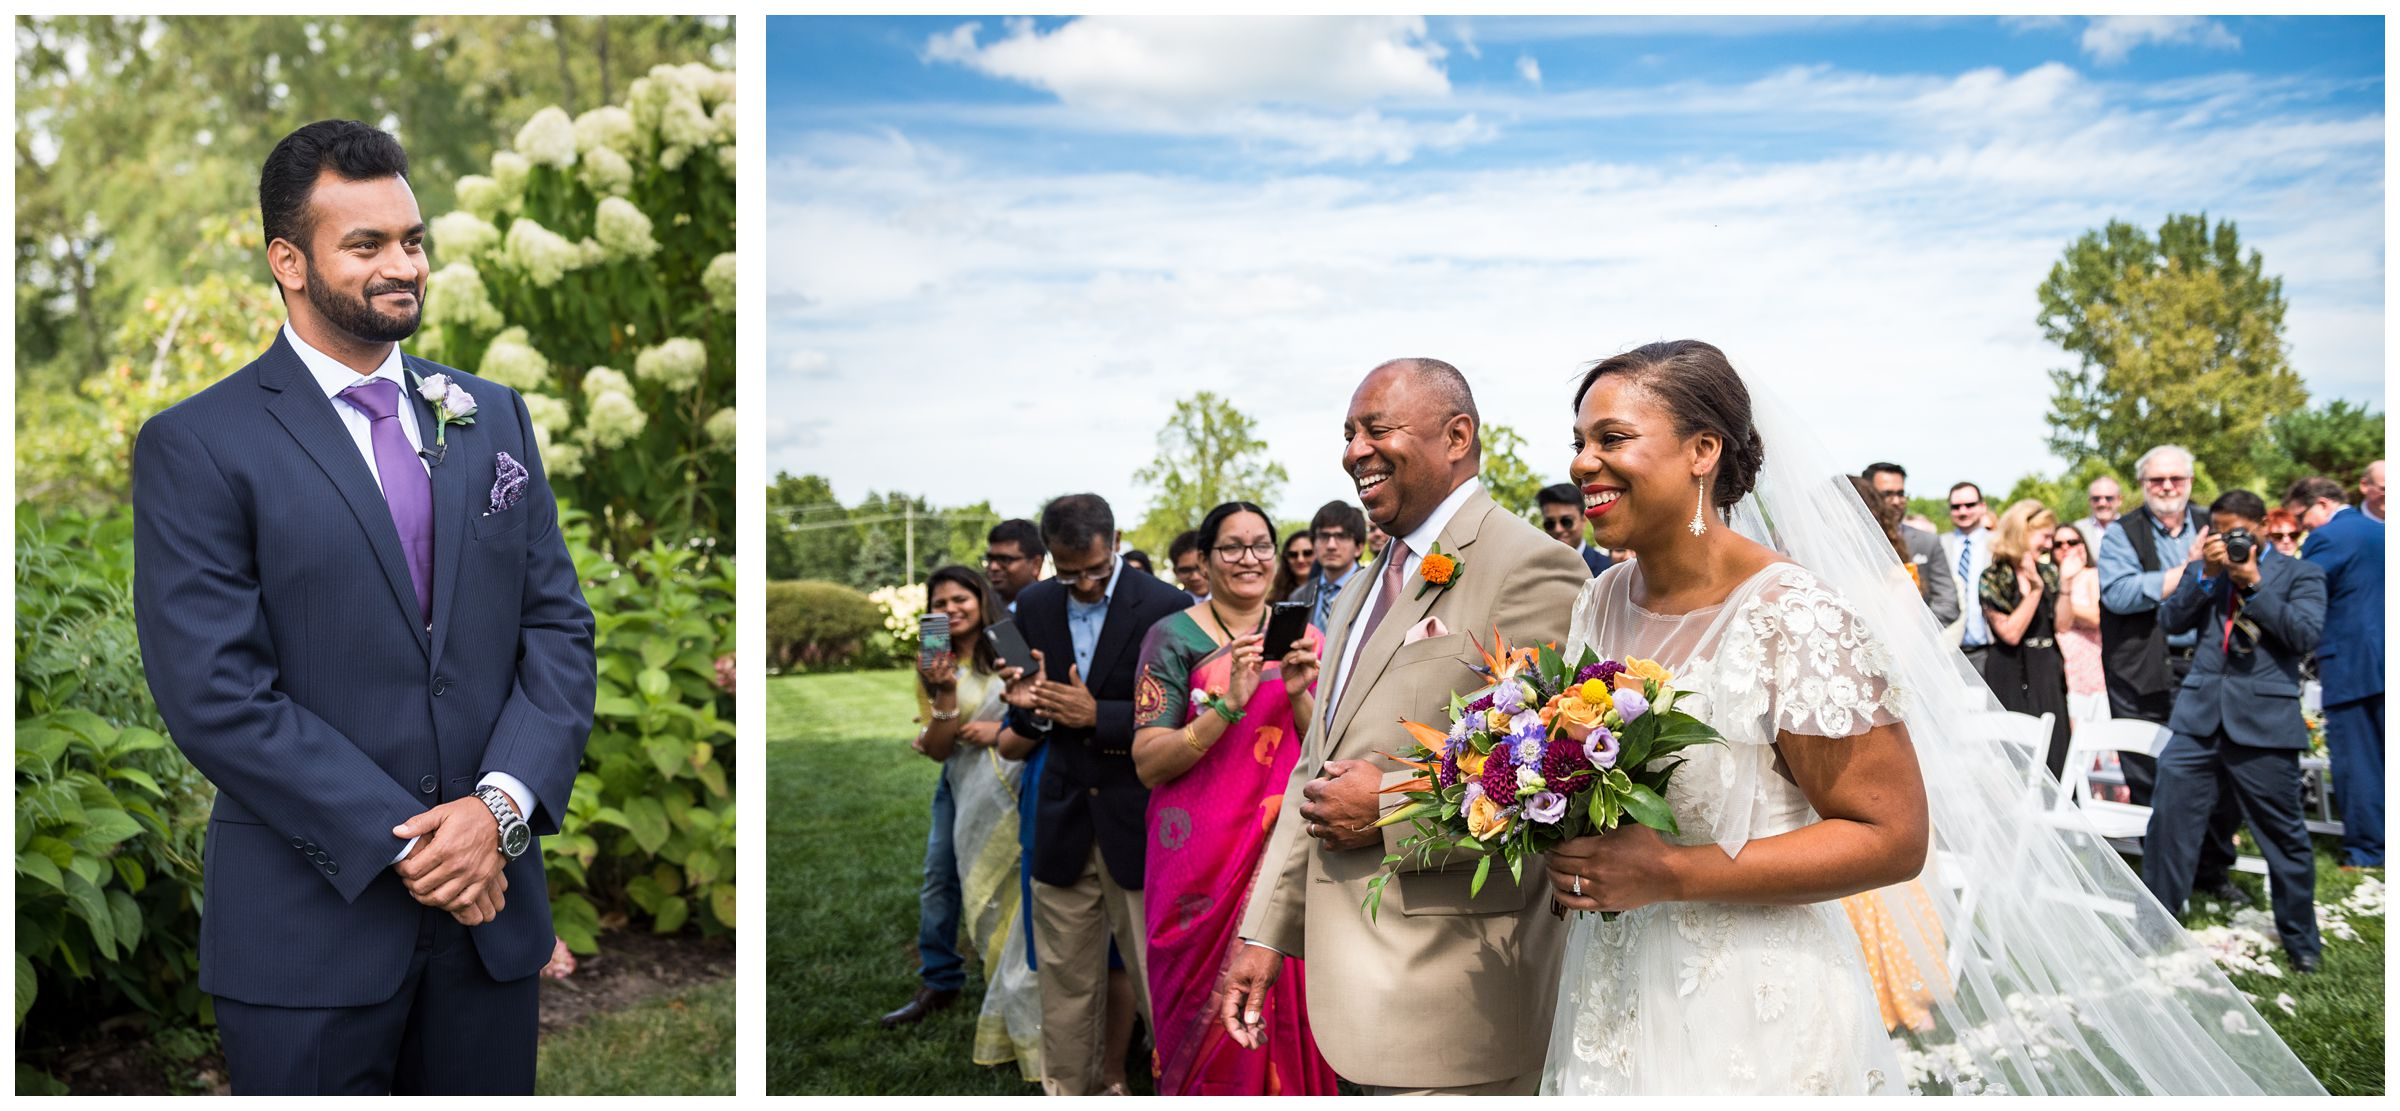 Indian groom waiting as black bride walks down aisle with father during summer Jorgensen Farms wedding